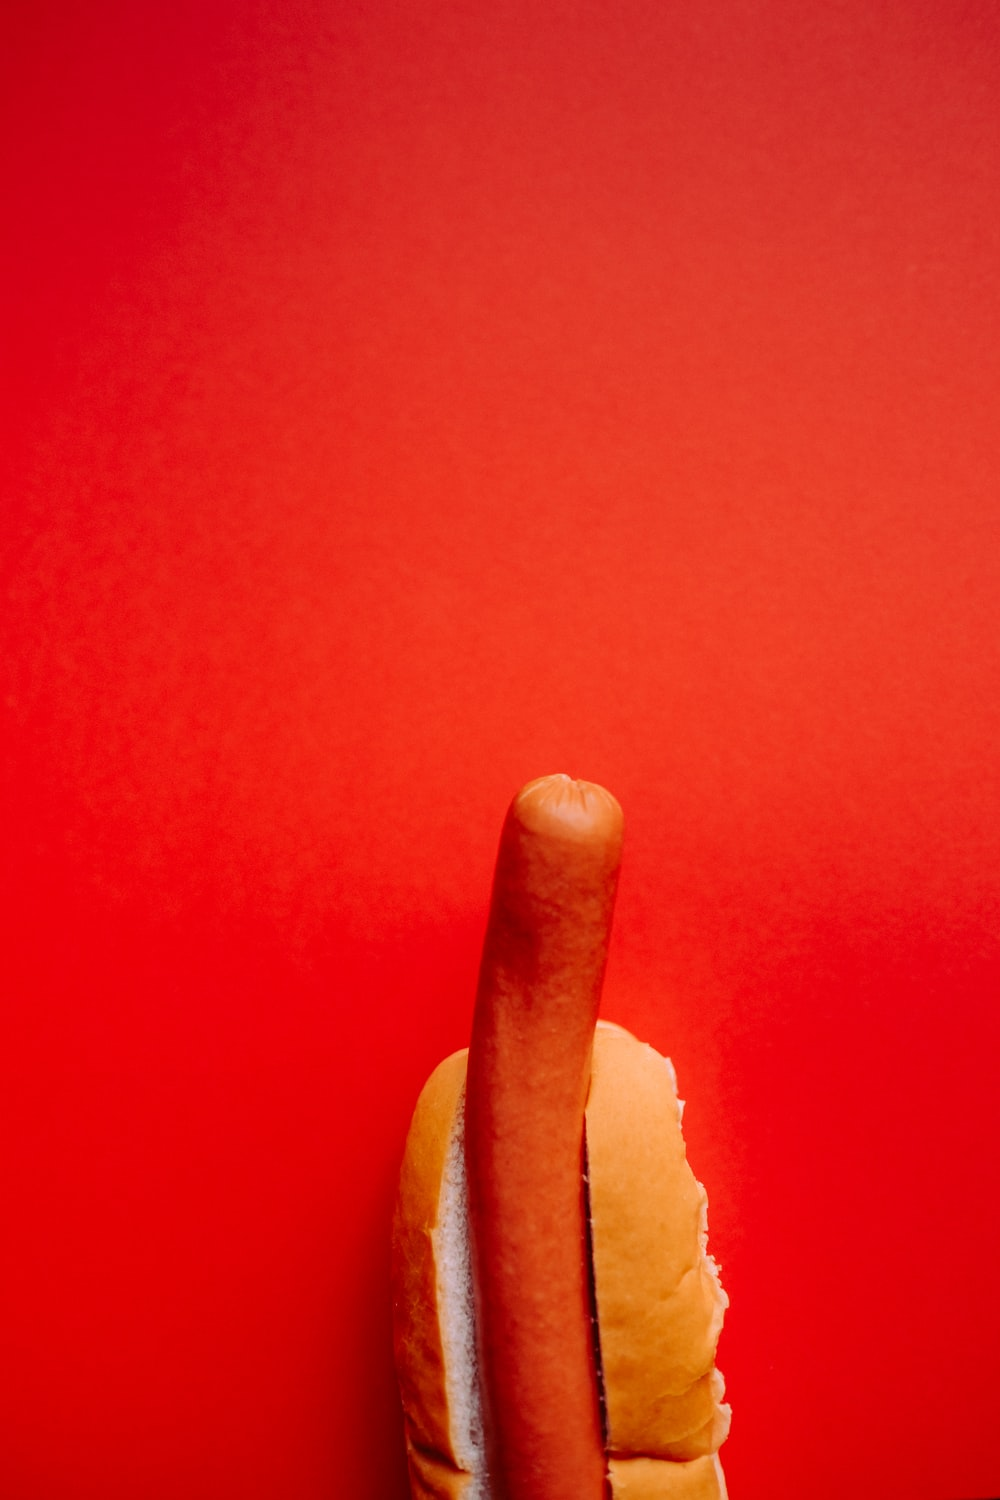 hotdog sandwich on red background